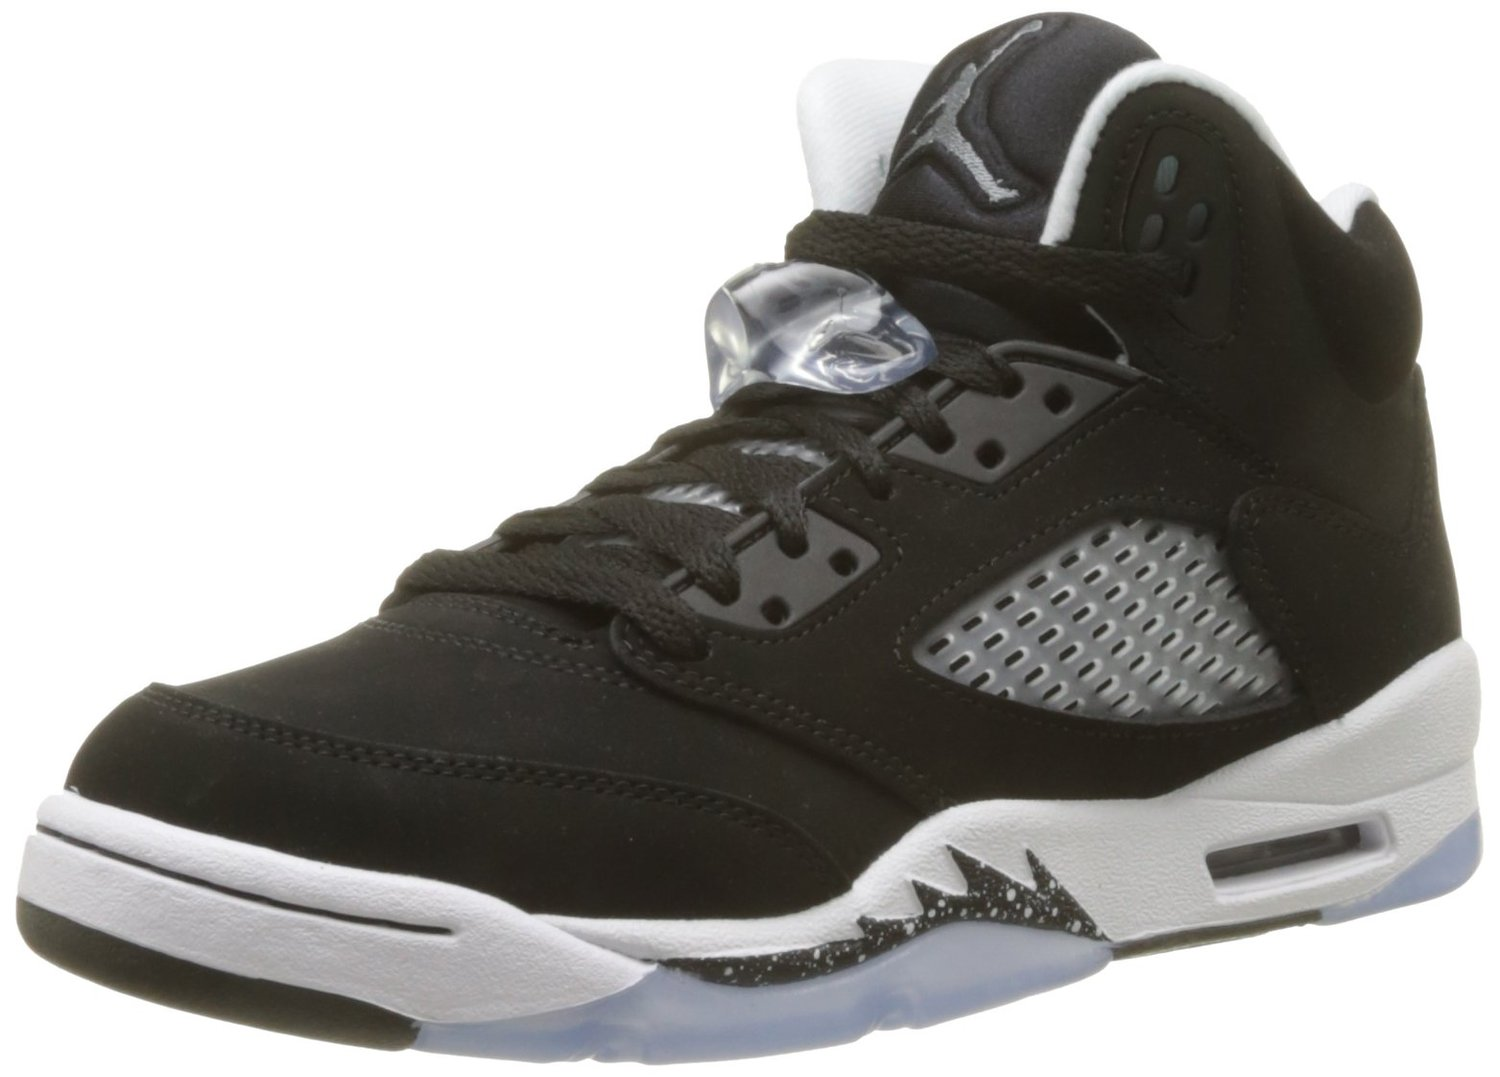 41f4123fa2b8af Clearance Jordans Retro Shoes